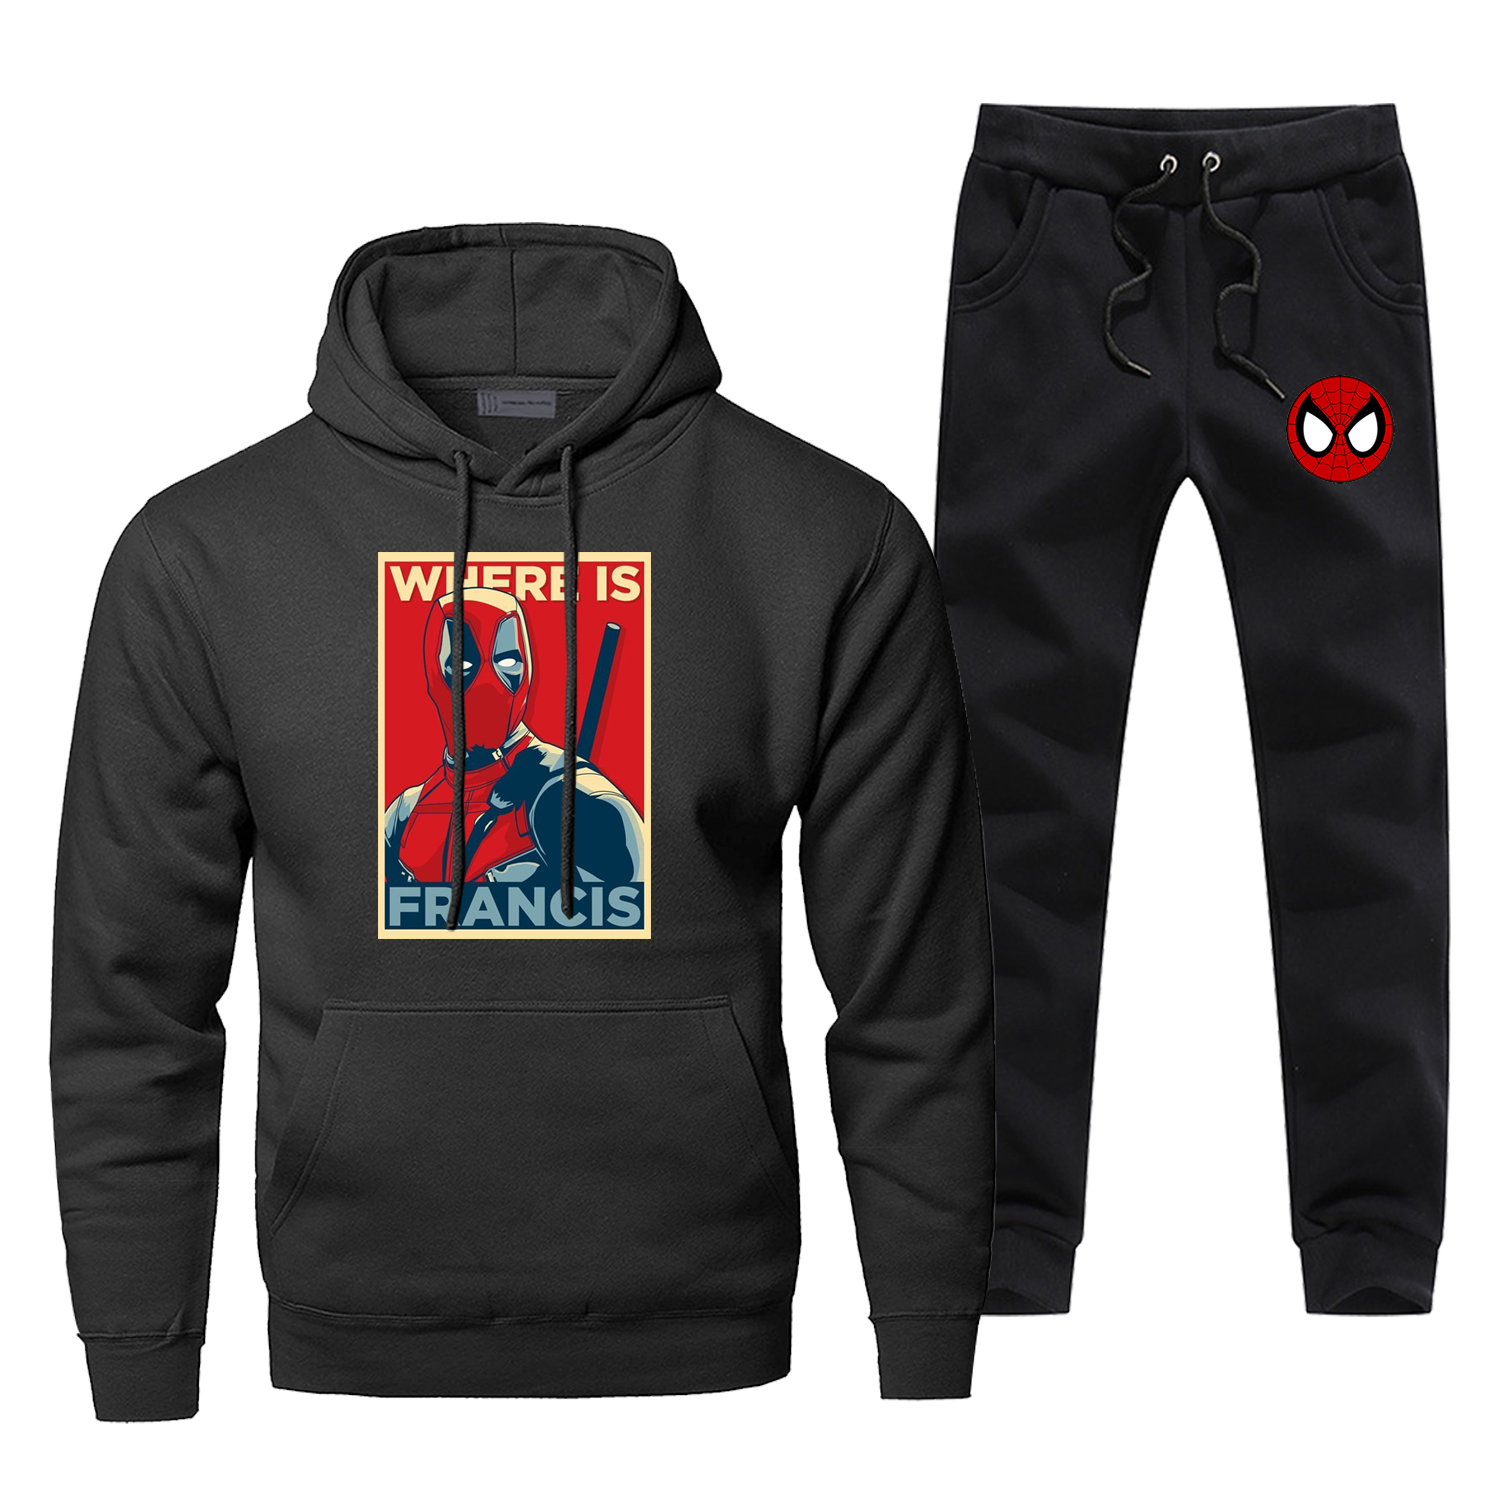 Where Is Francis Funny Print Men's Sets Deadpool Super Hero Fashion Men's Full Suit Tracksuit Casual Winter Warm Hoodies Pants